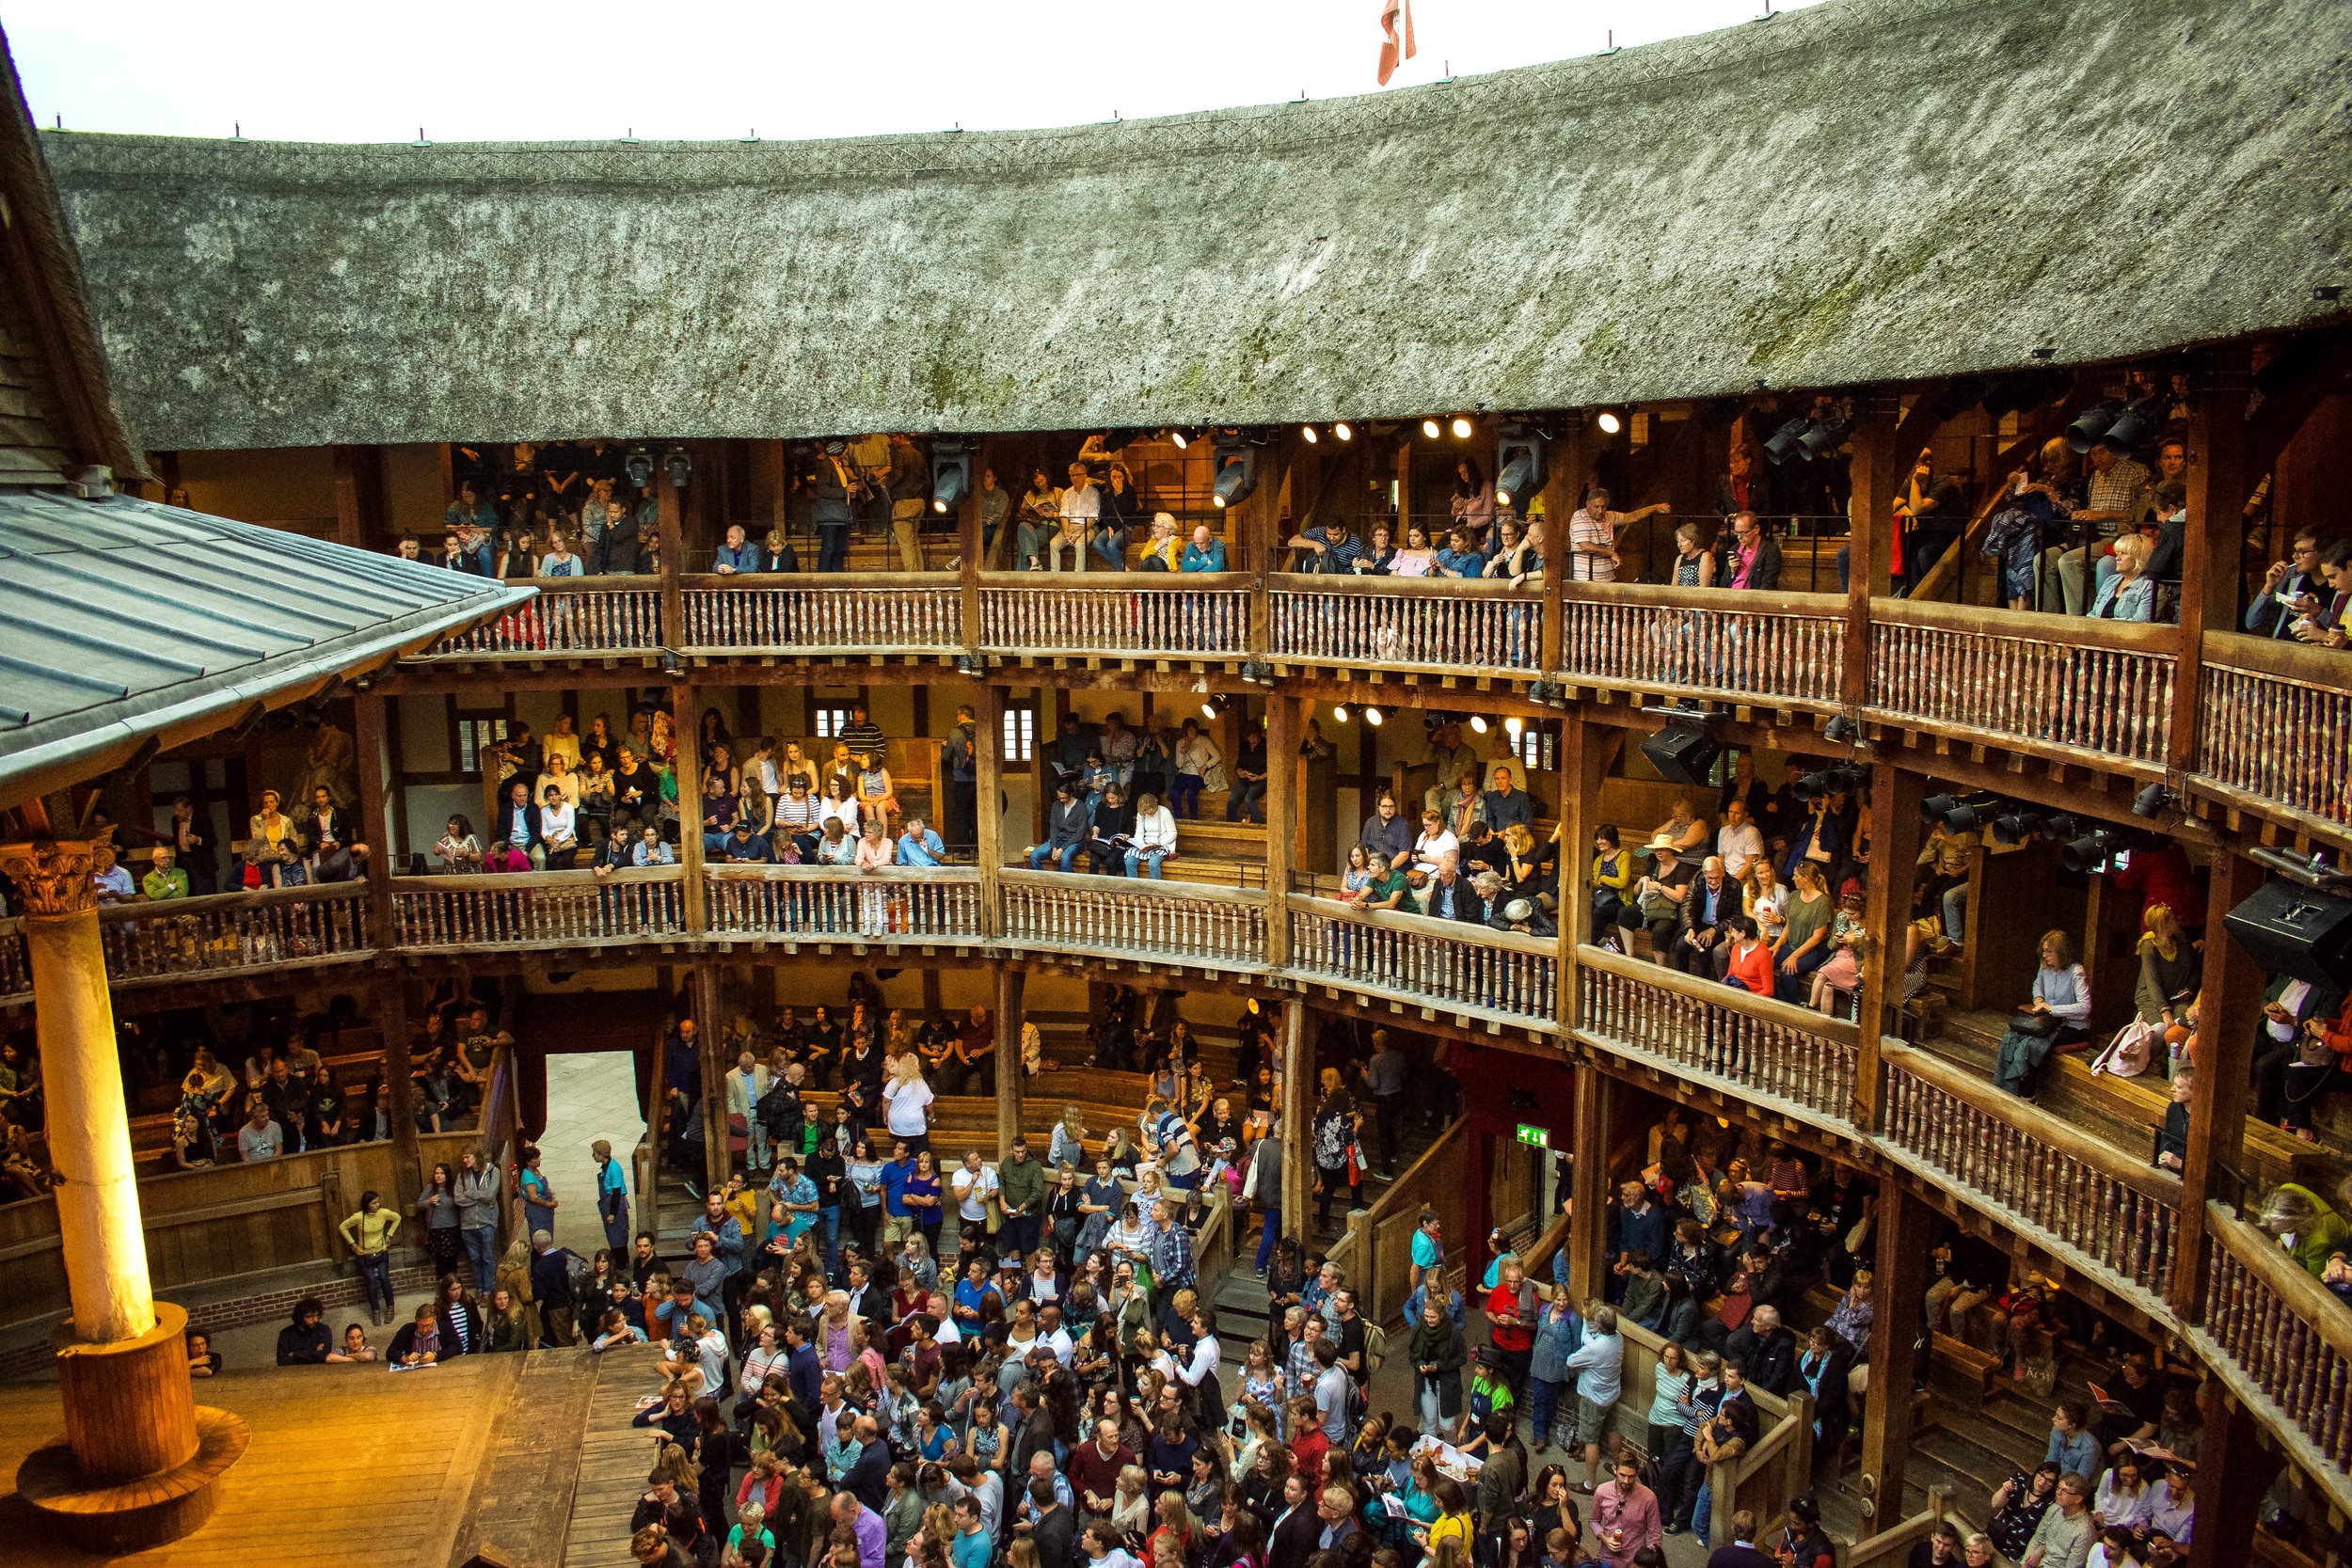 5. Shakespeare's Globe Theatre - *See a Shakespearean Play Here!